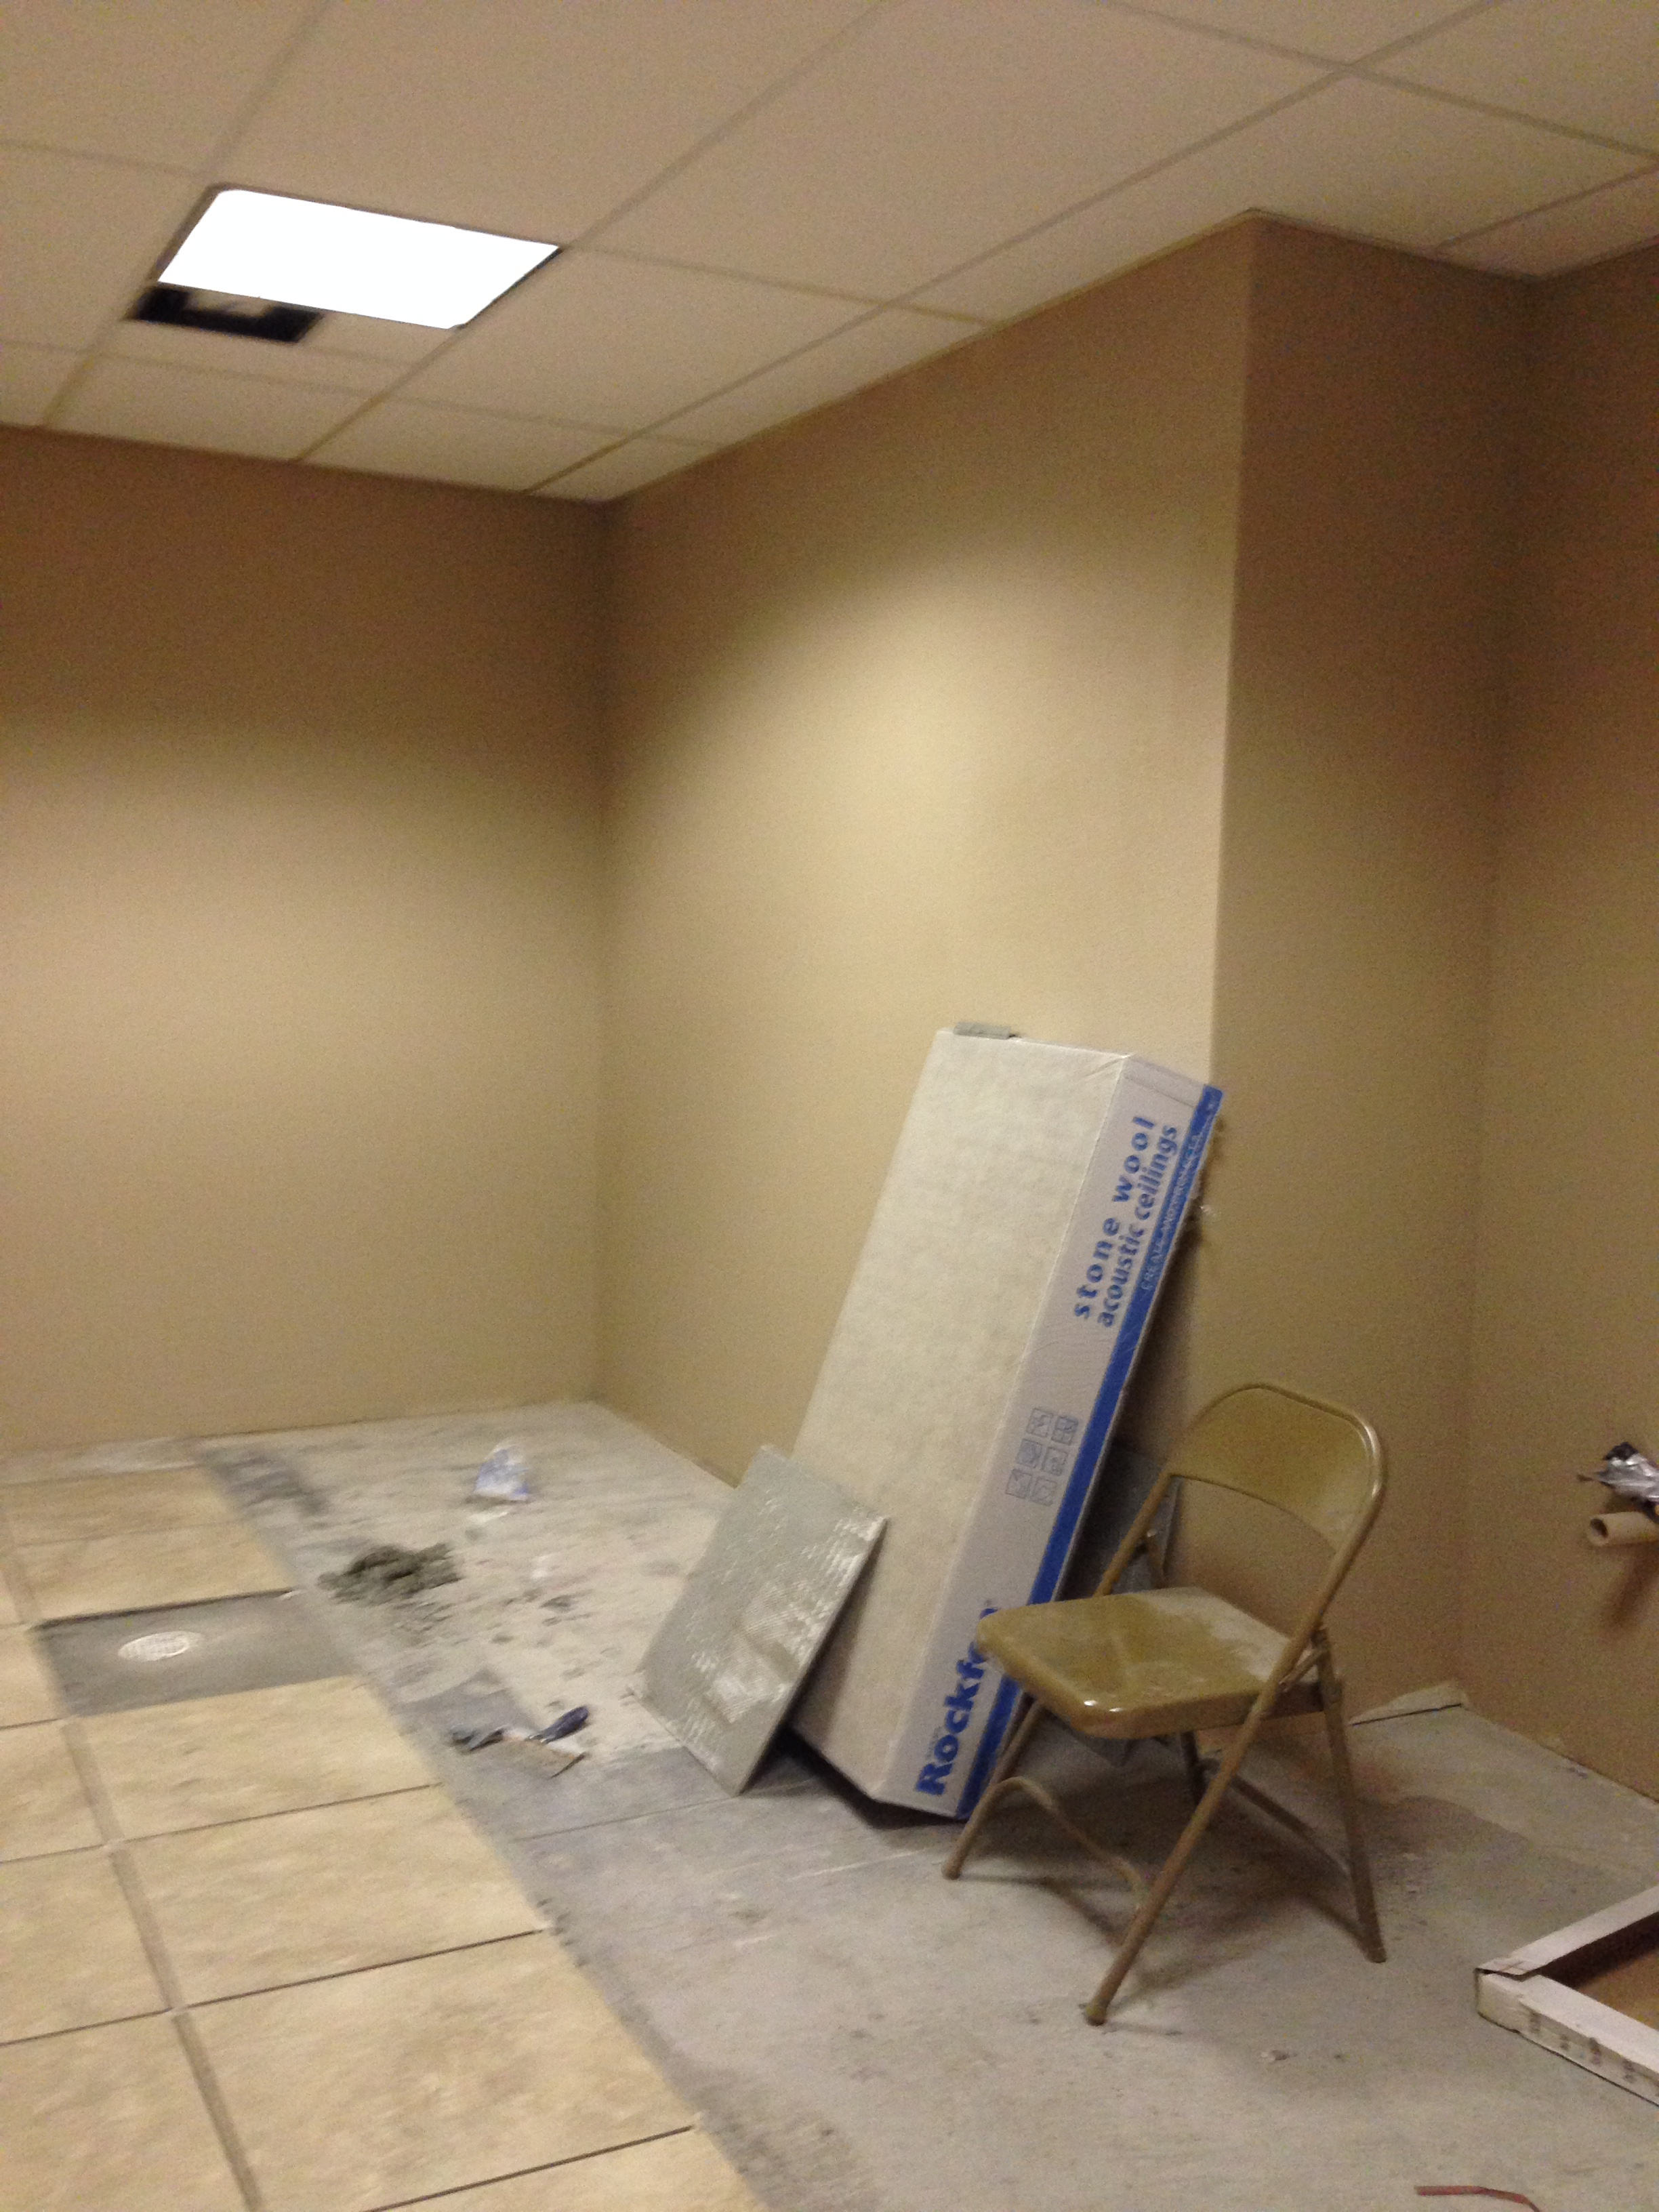 Women's restroom almost completed